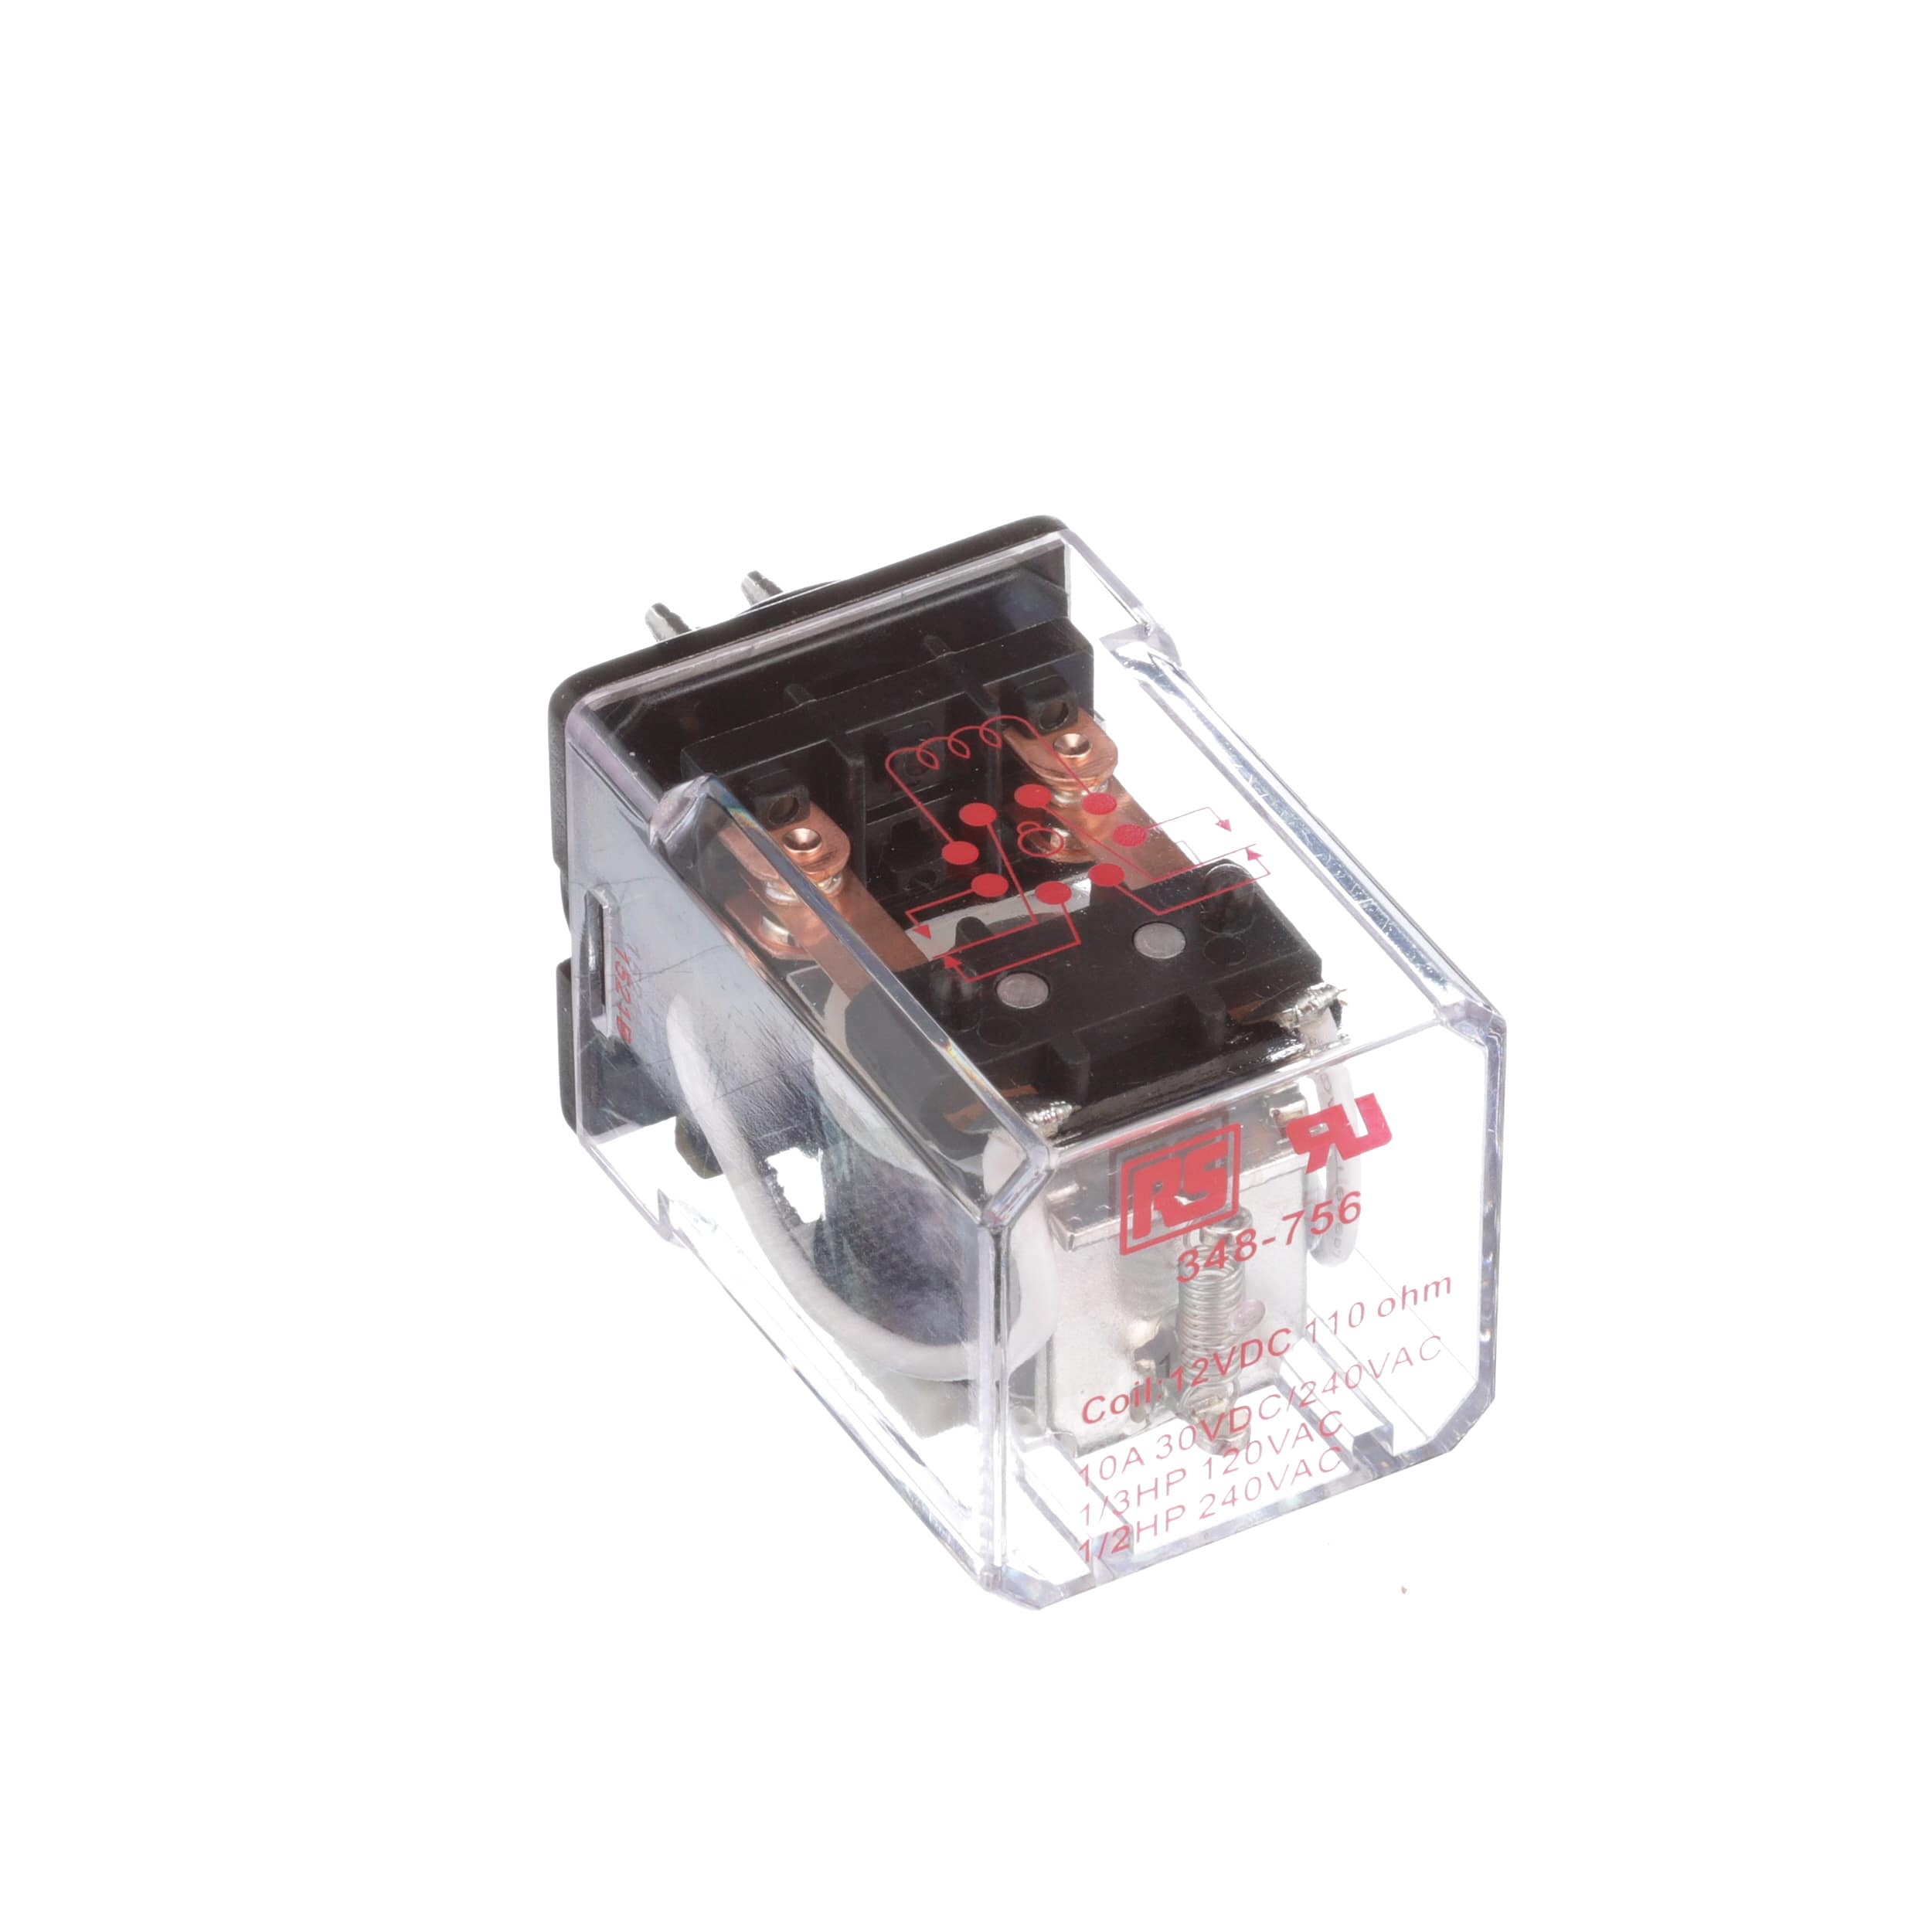 Rs Pro 348756 Socket Mount Non Latching Relay Dpdt 8 Pin Octal 12vdc 10a Allied Electronics Automation